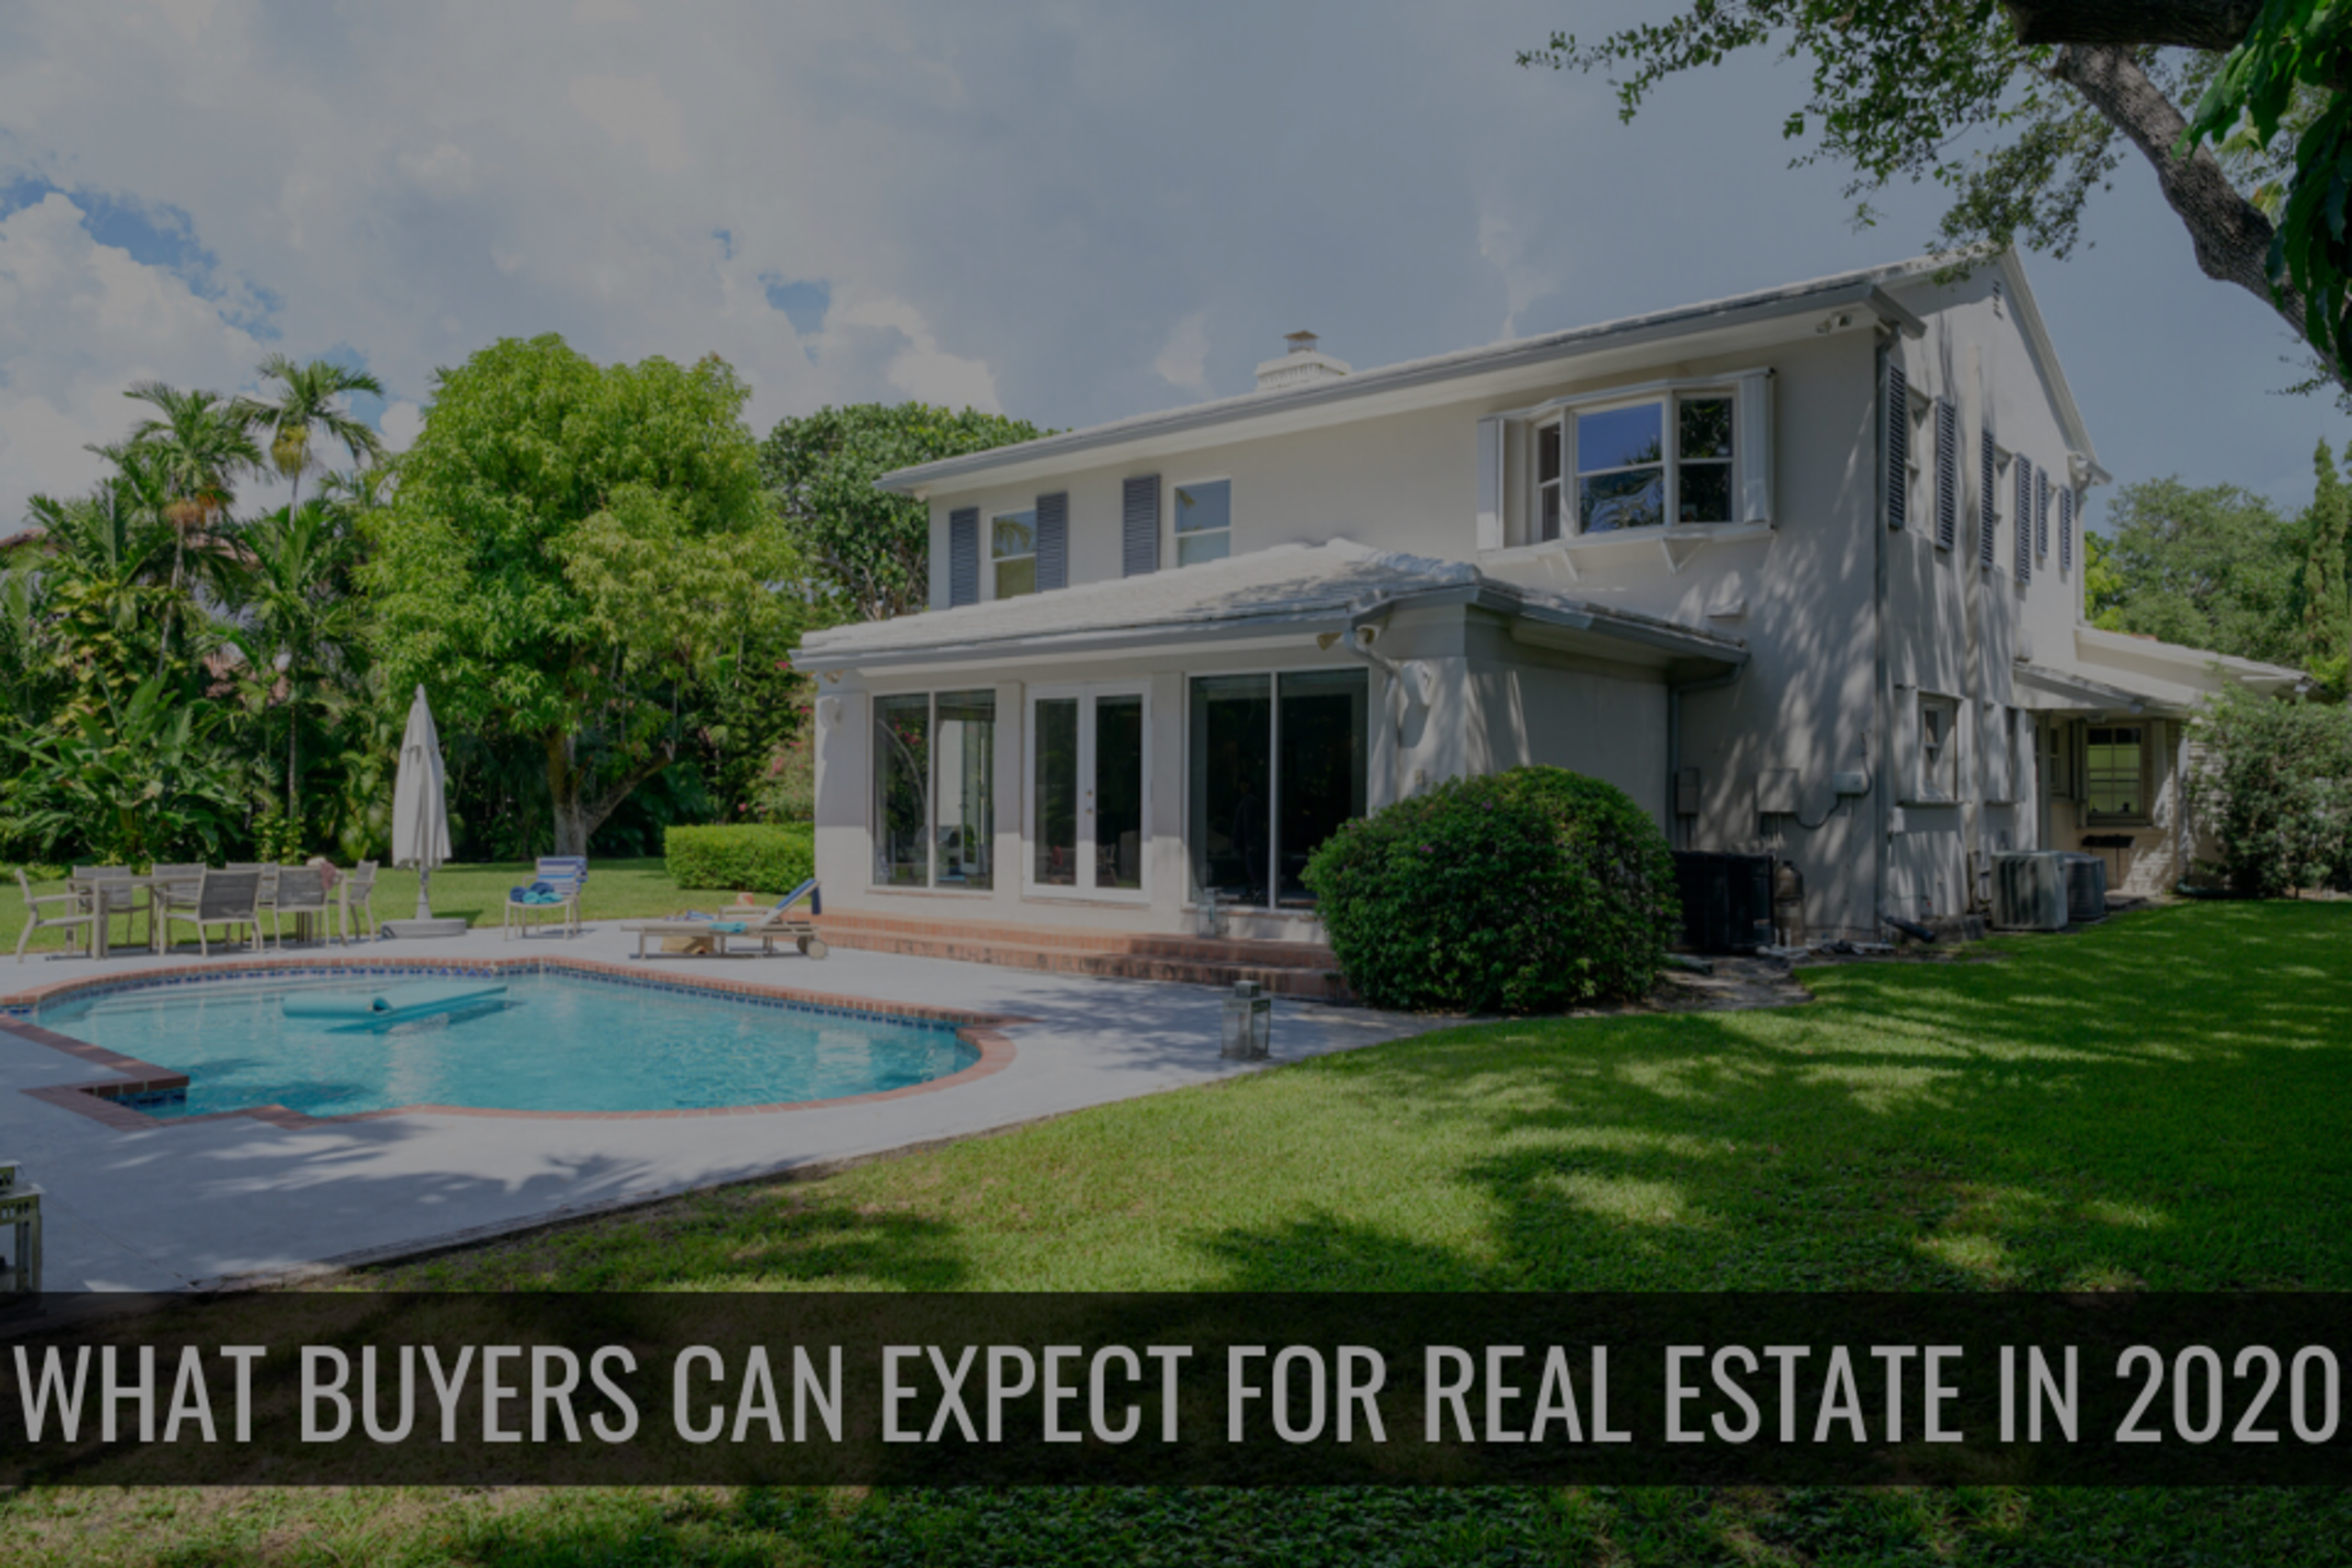 What Buyers Can Expect For Real Estate in 2020